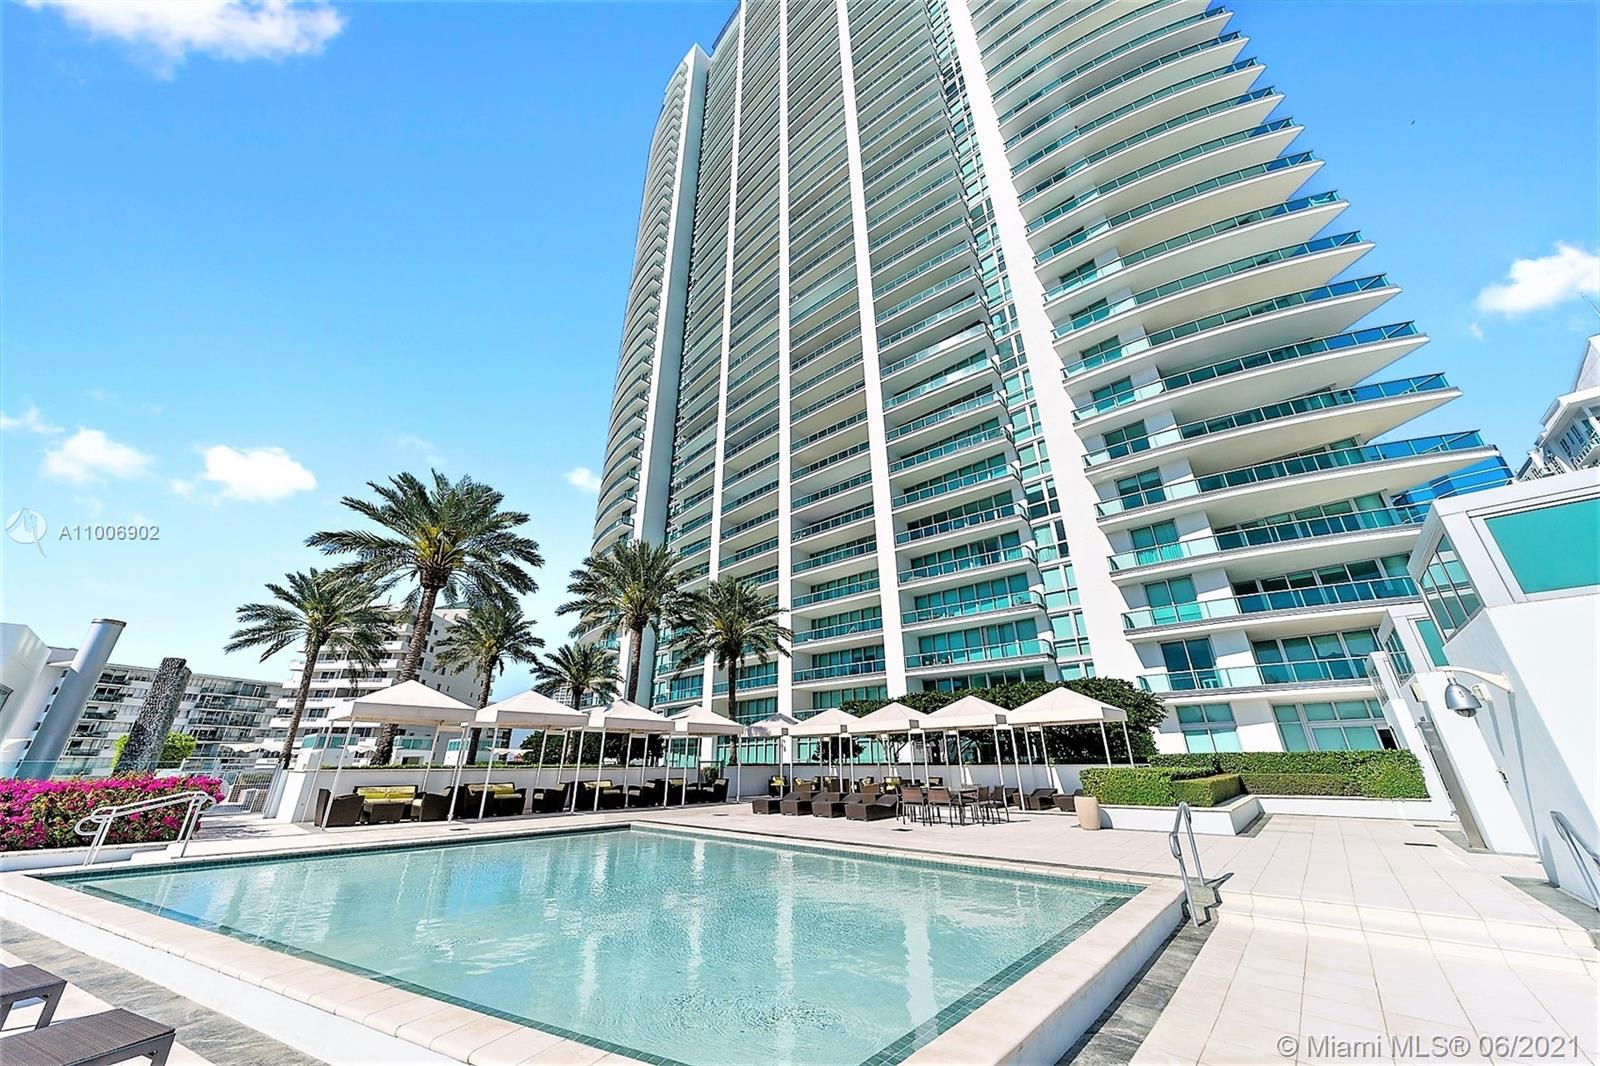 Sophistication & Elegance in this resort style unit in the heart of Brickell. Amazing views as soon as the private elevator opens into this beautiful South East corner residence. Marble floors, open kitchen, top of the line appliances, custom made closets. Excellent waterfront location just steps from all the booming action that Brickell have to offer. Five star amenities, including state of the art fitness center w/bay views, infinity-edge pool at 7th floor w/cabanas & towel service, spa w/sauna & steam room. 24 o concierge. Roof-top sky-lounge. Library, media room, observation deck, business center w/conference room. Racquetball court. On site restaurant. 2 Parking spaces: 1 space assigned + 1 valet.